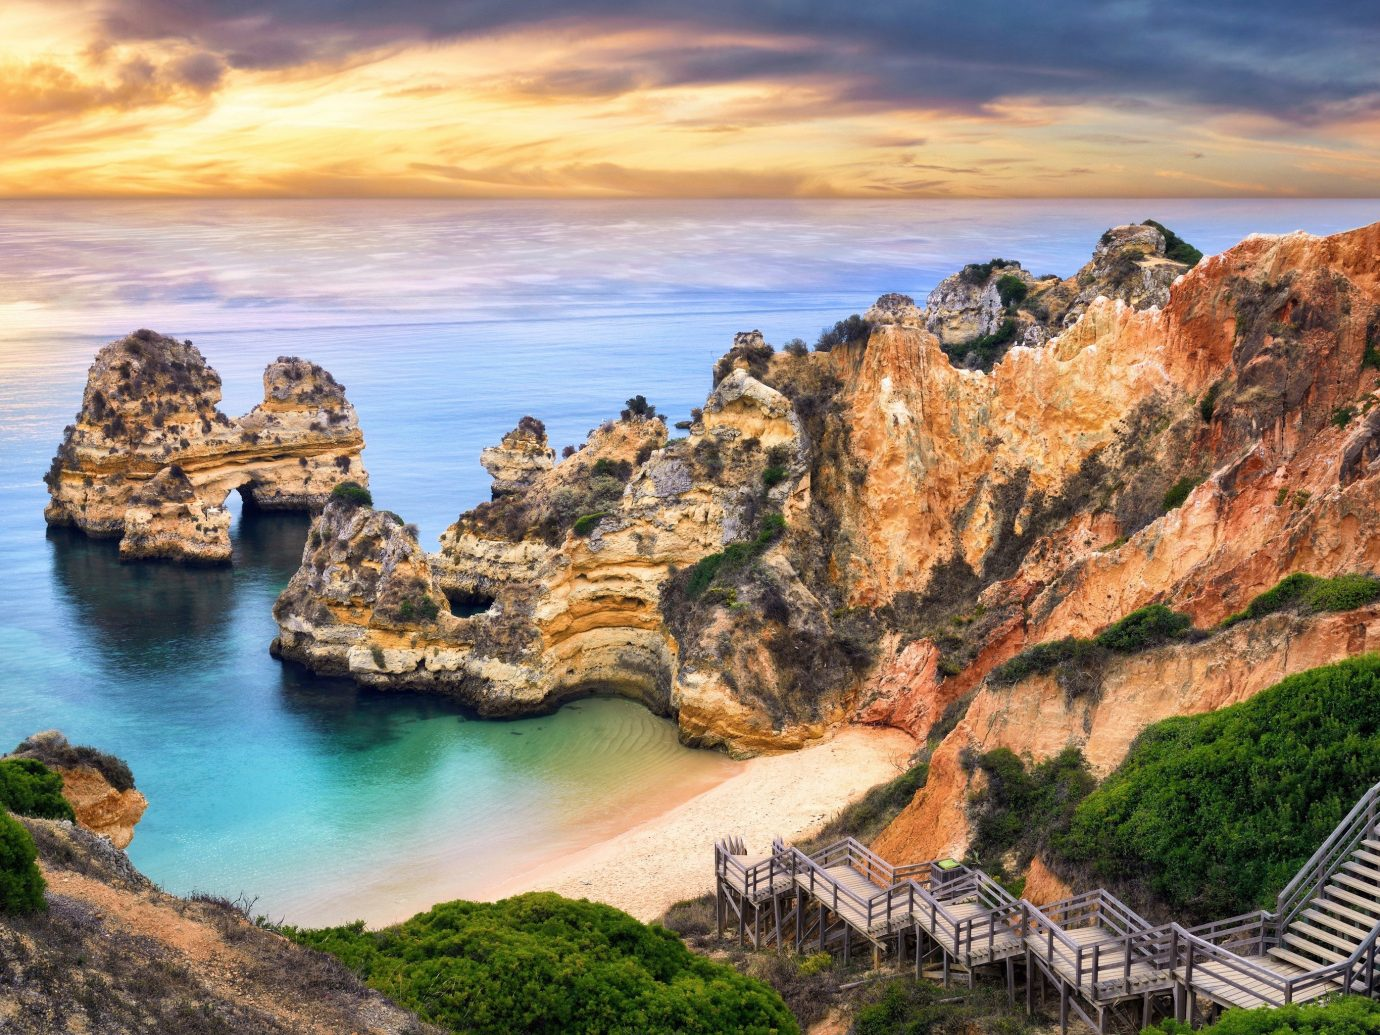 Offbeat Travel Tips outdoor rock Nature Coast landform mountain geographical feature cliff canyon Sea valley shore terrain landscape rocky cape bay cove